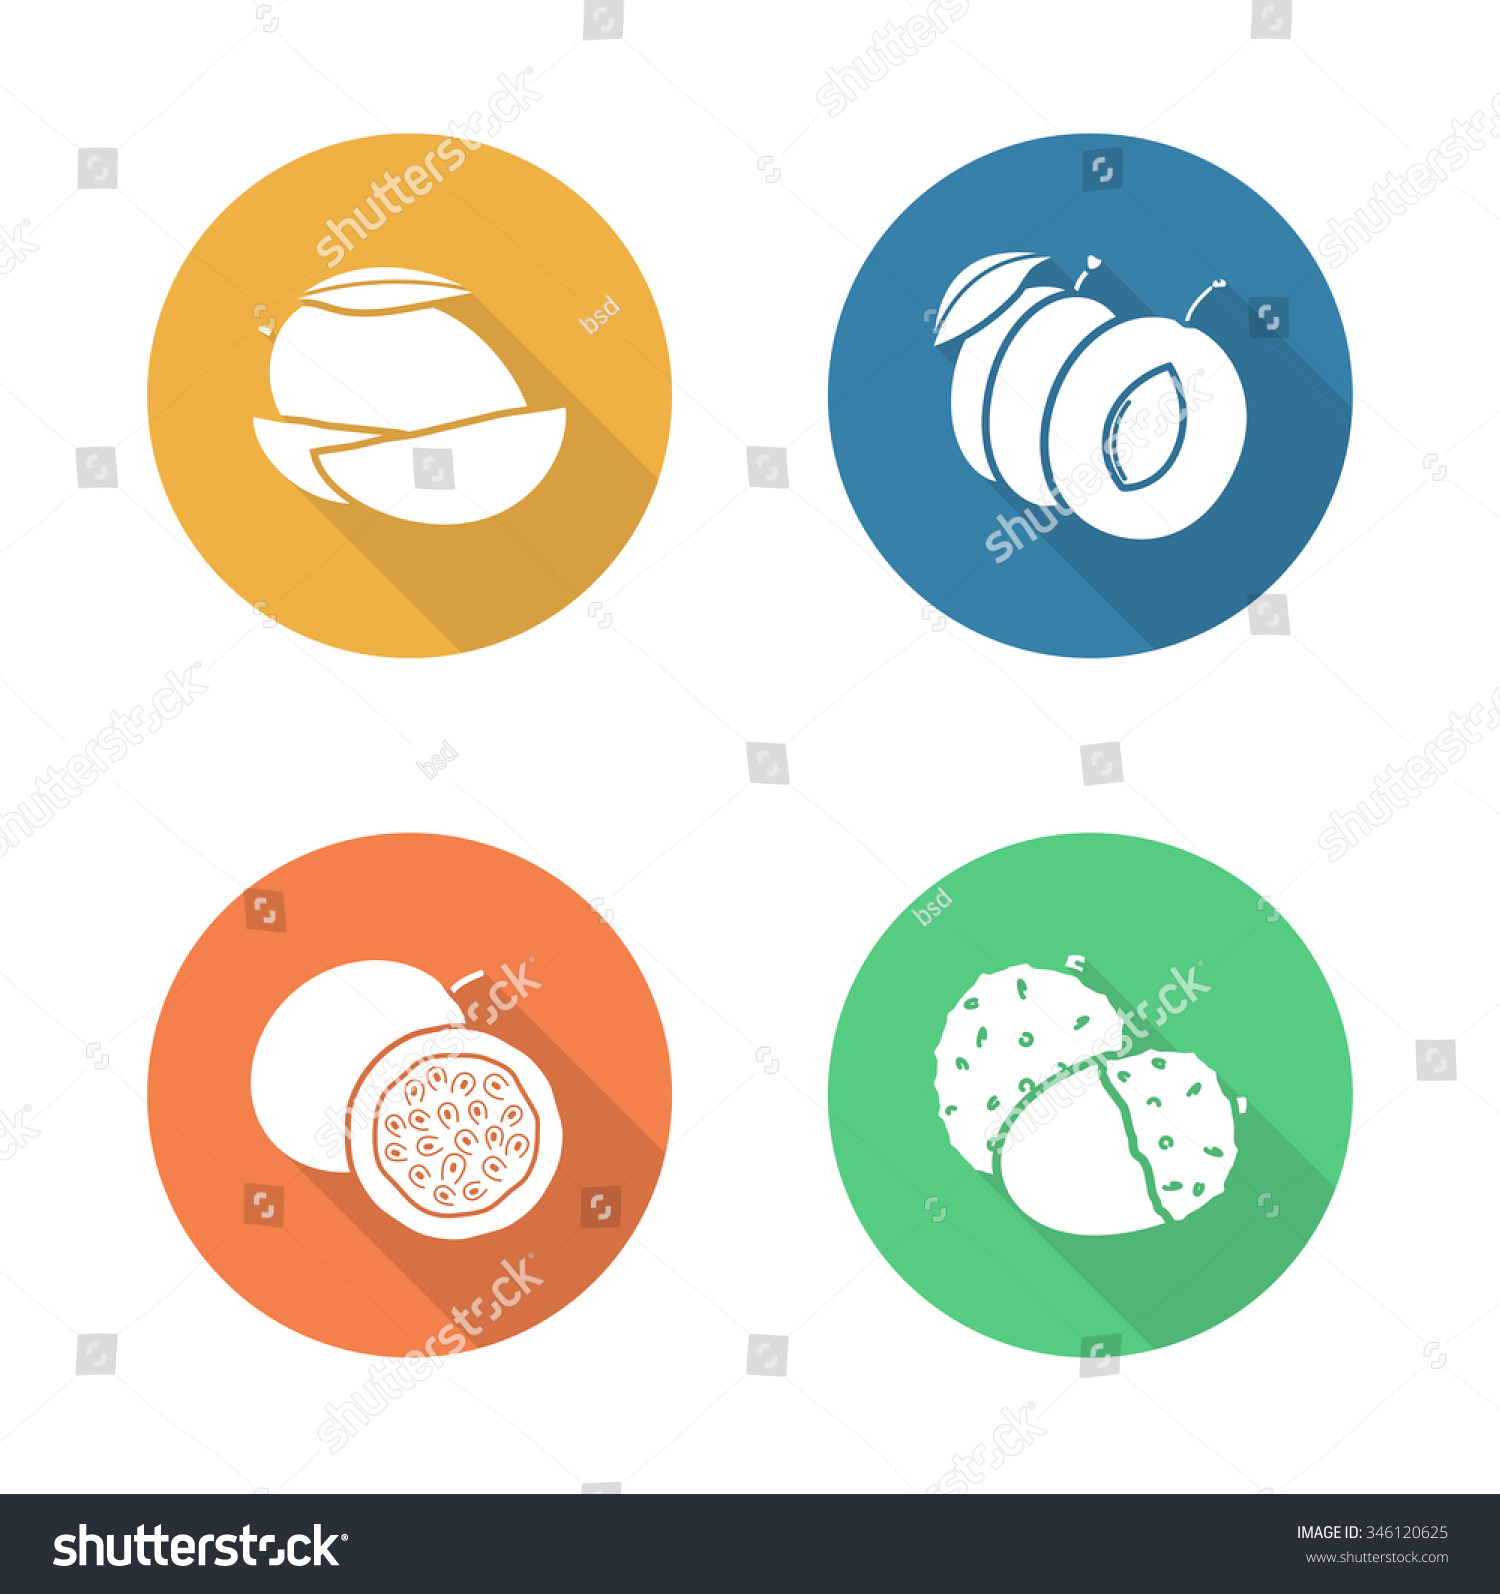 Fruits Flat Design Icons Set Sliced Stock Illustration 346120625 Ode To  Conti's Mango Bravo How To Cut